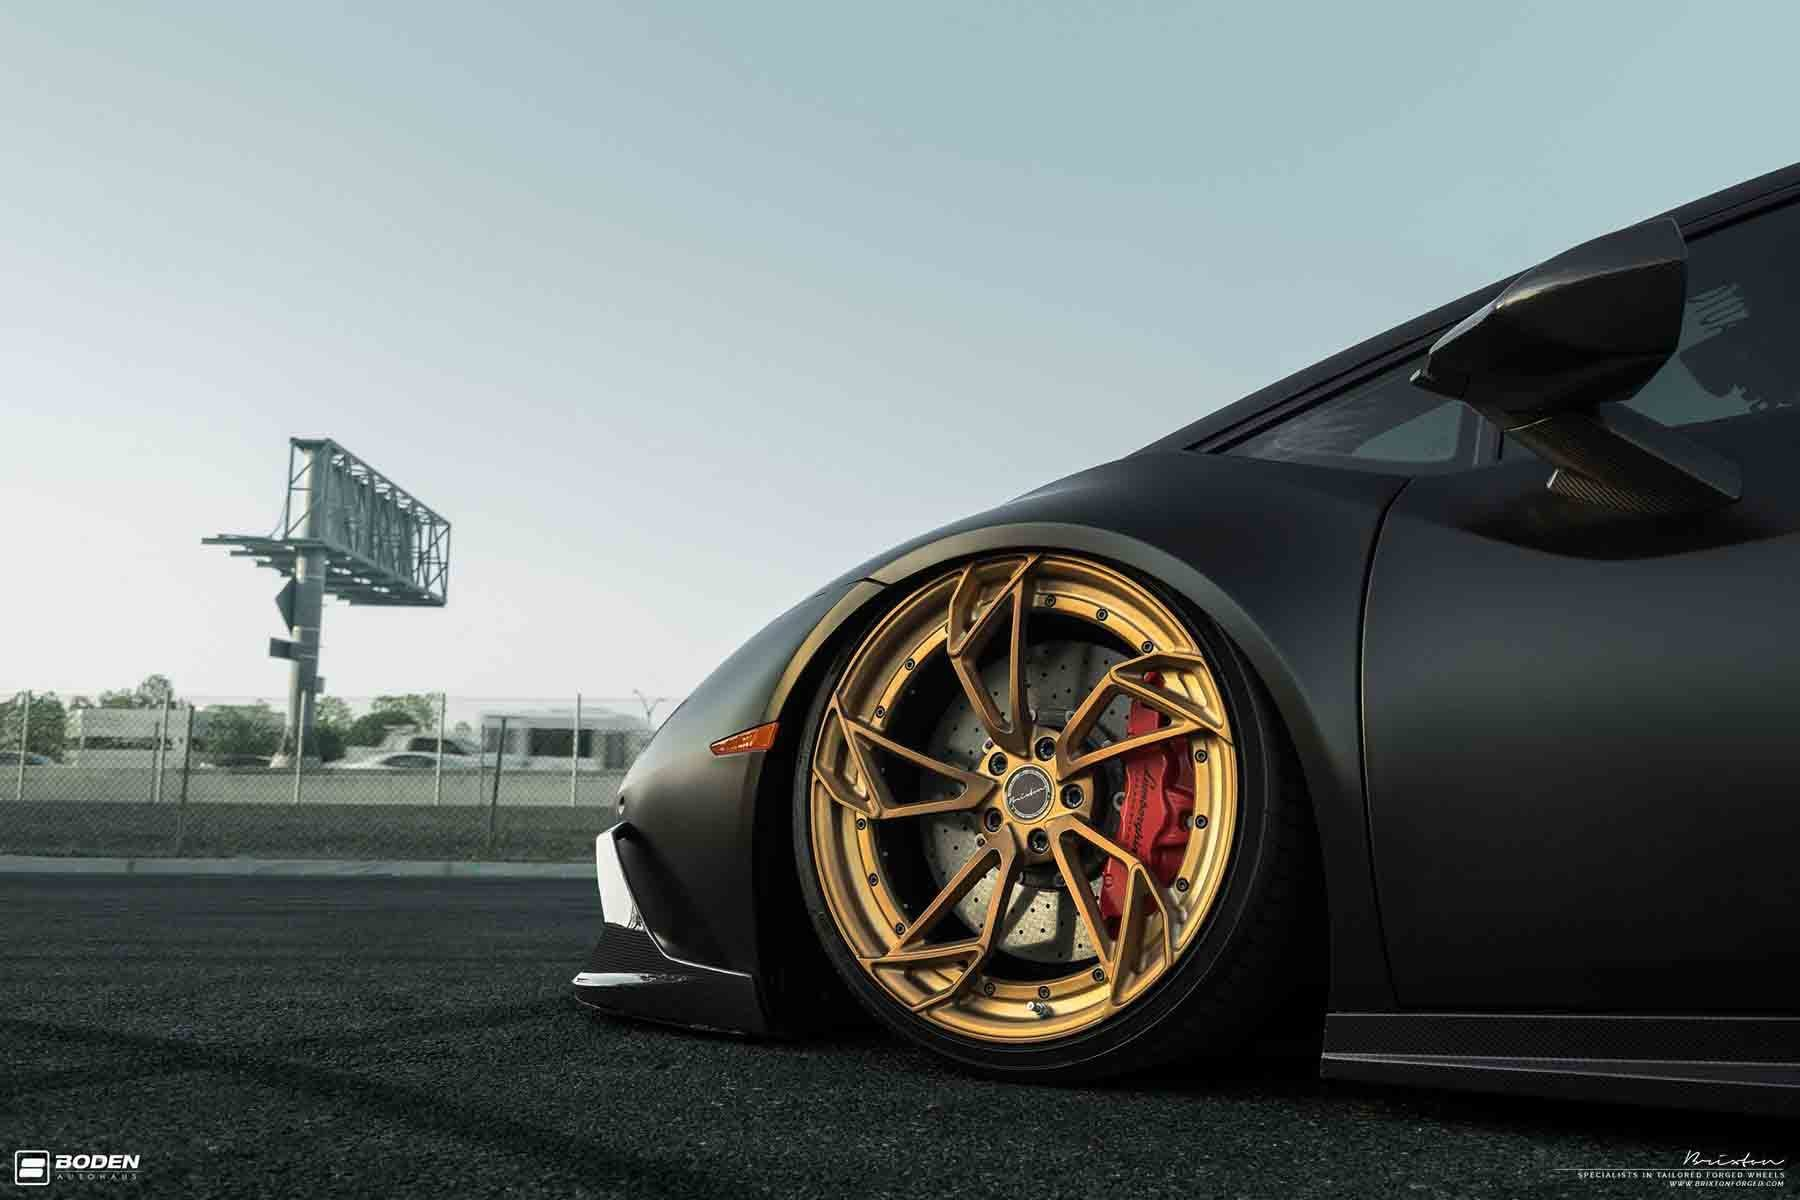 images-products-1-1954-232974242-brixton-forged-wheels-lamborghini-huracan-boden-autohaus-wstbank-bape-camo-brixton-forged-pf1-du.jpg